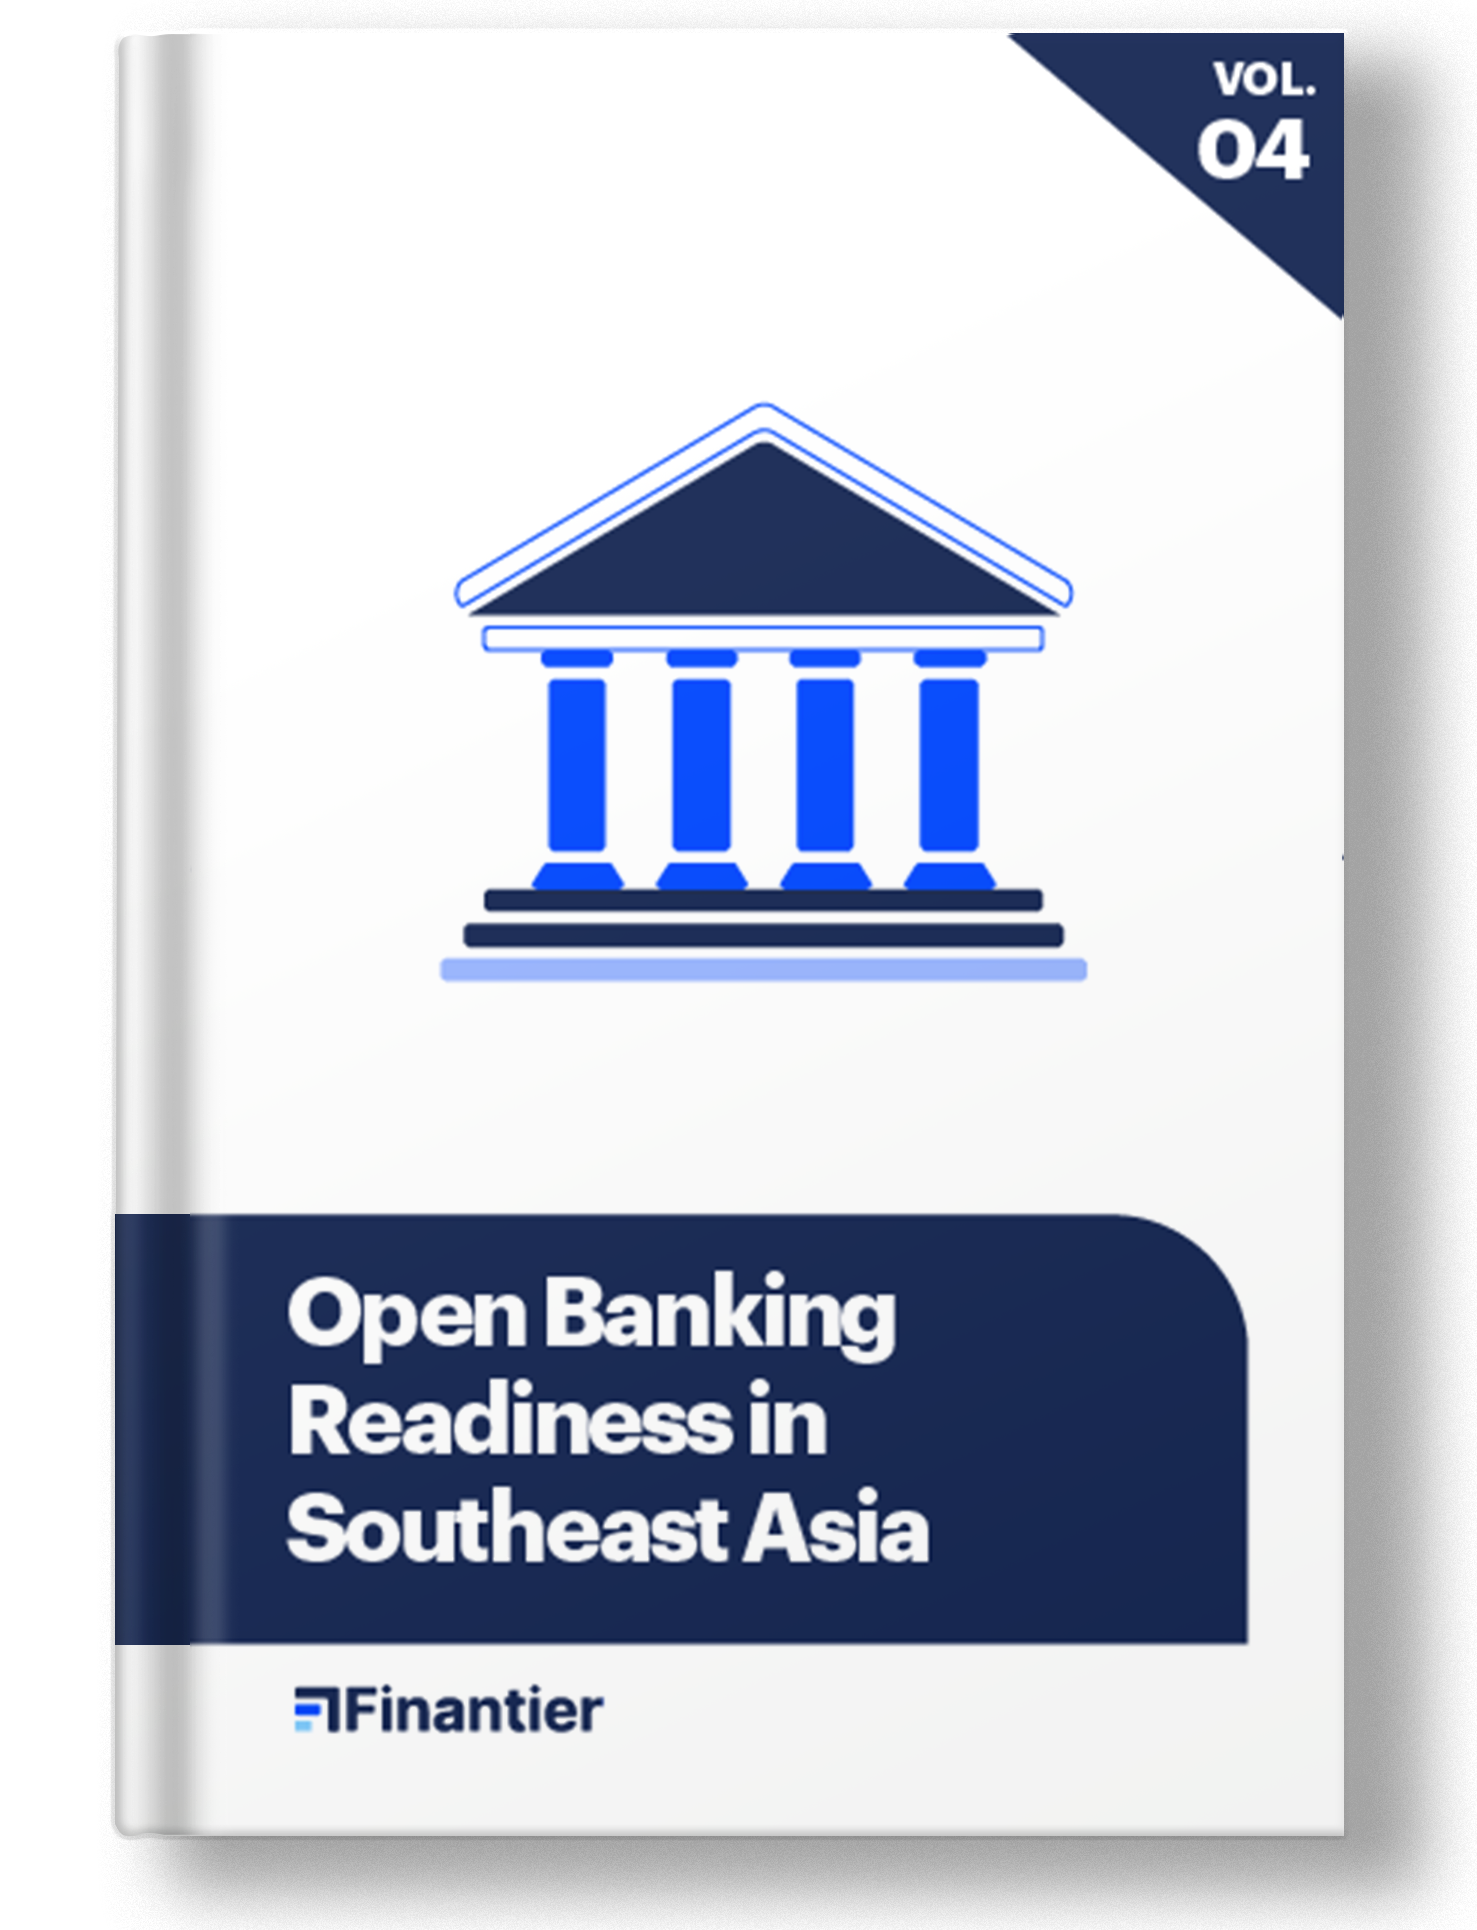 Open Banking Readiness in Southeast Asia